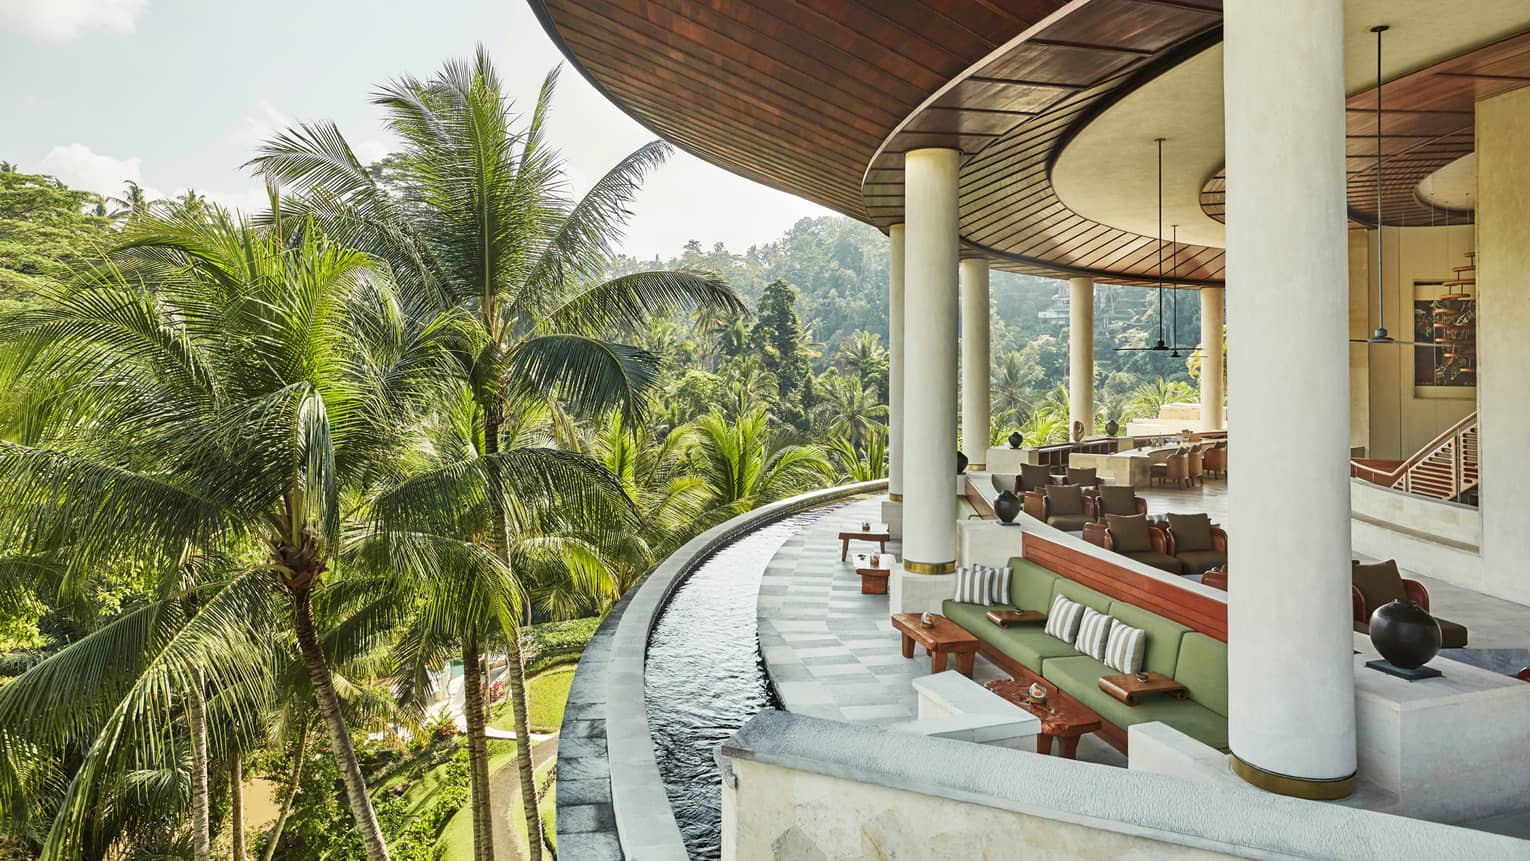 Curved outdoor balcony with water around ledge, green and wood sofas, chairs, vases, large palm leaves outdoors